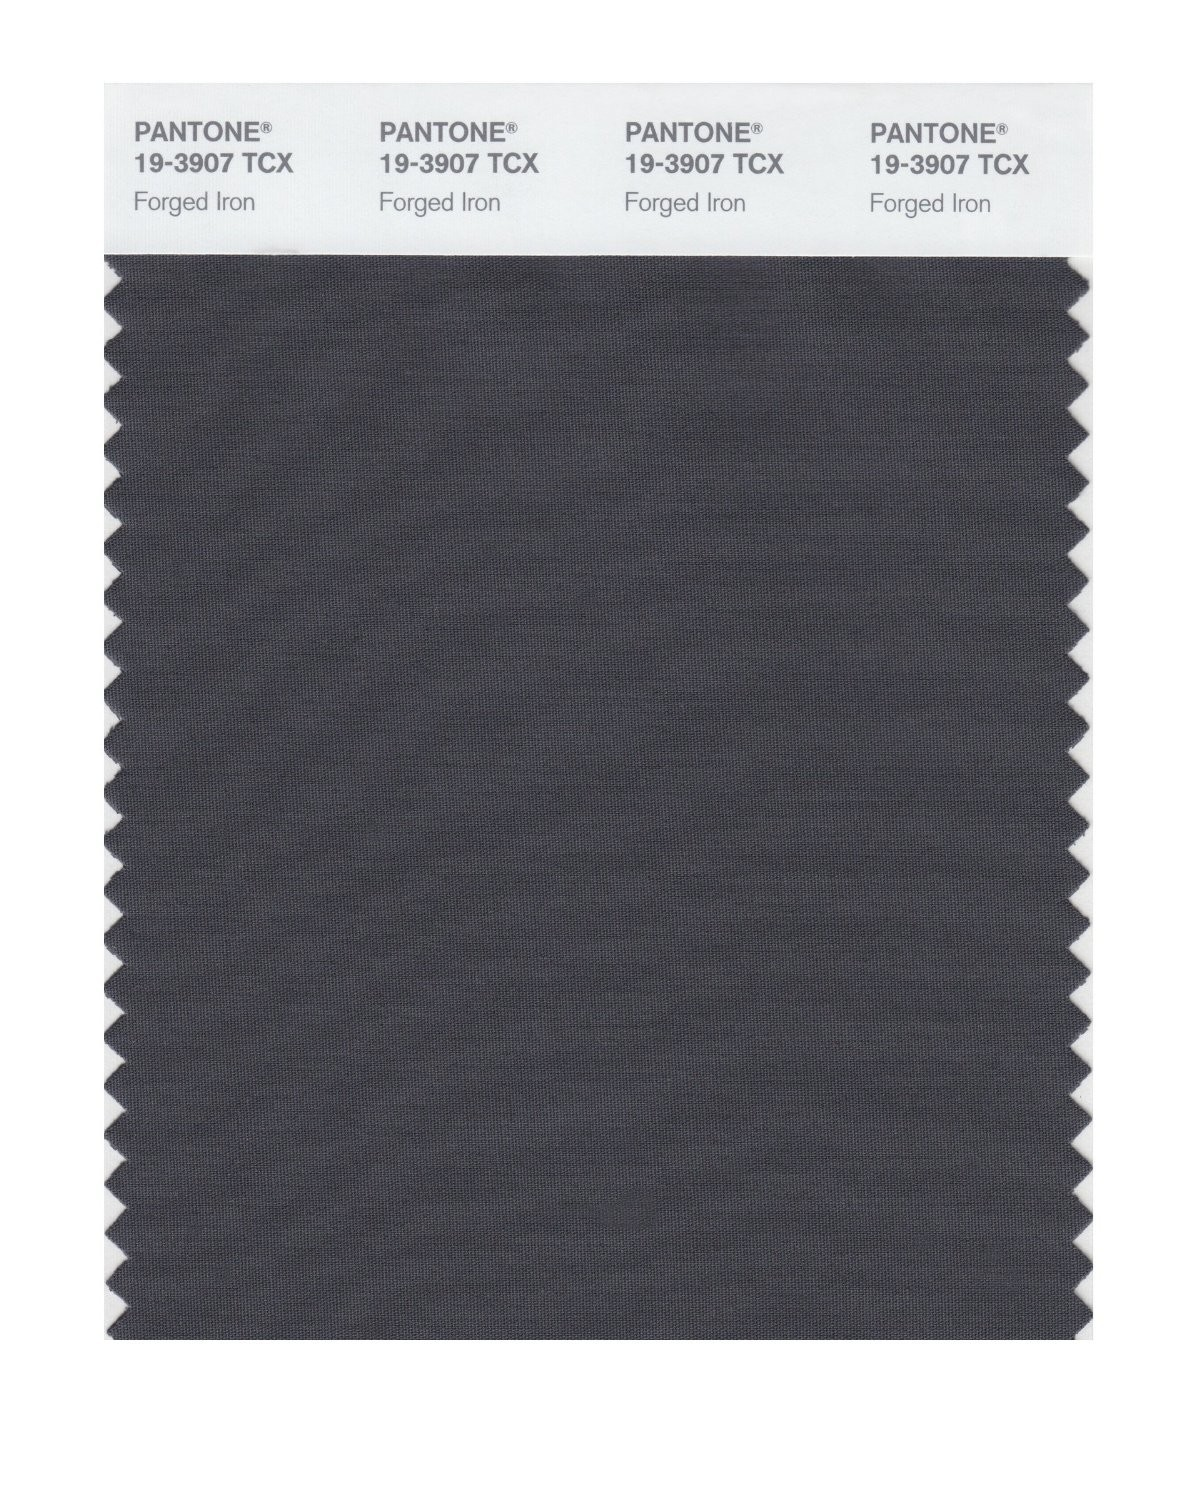 Pantone 19-3907 TCX Swatch Card Forged Iron